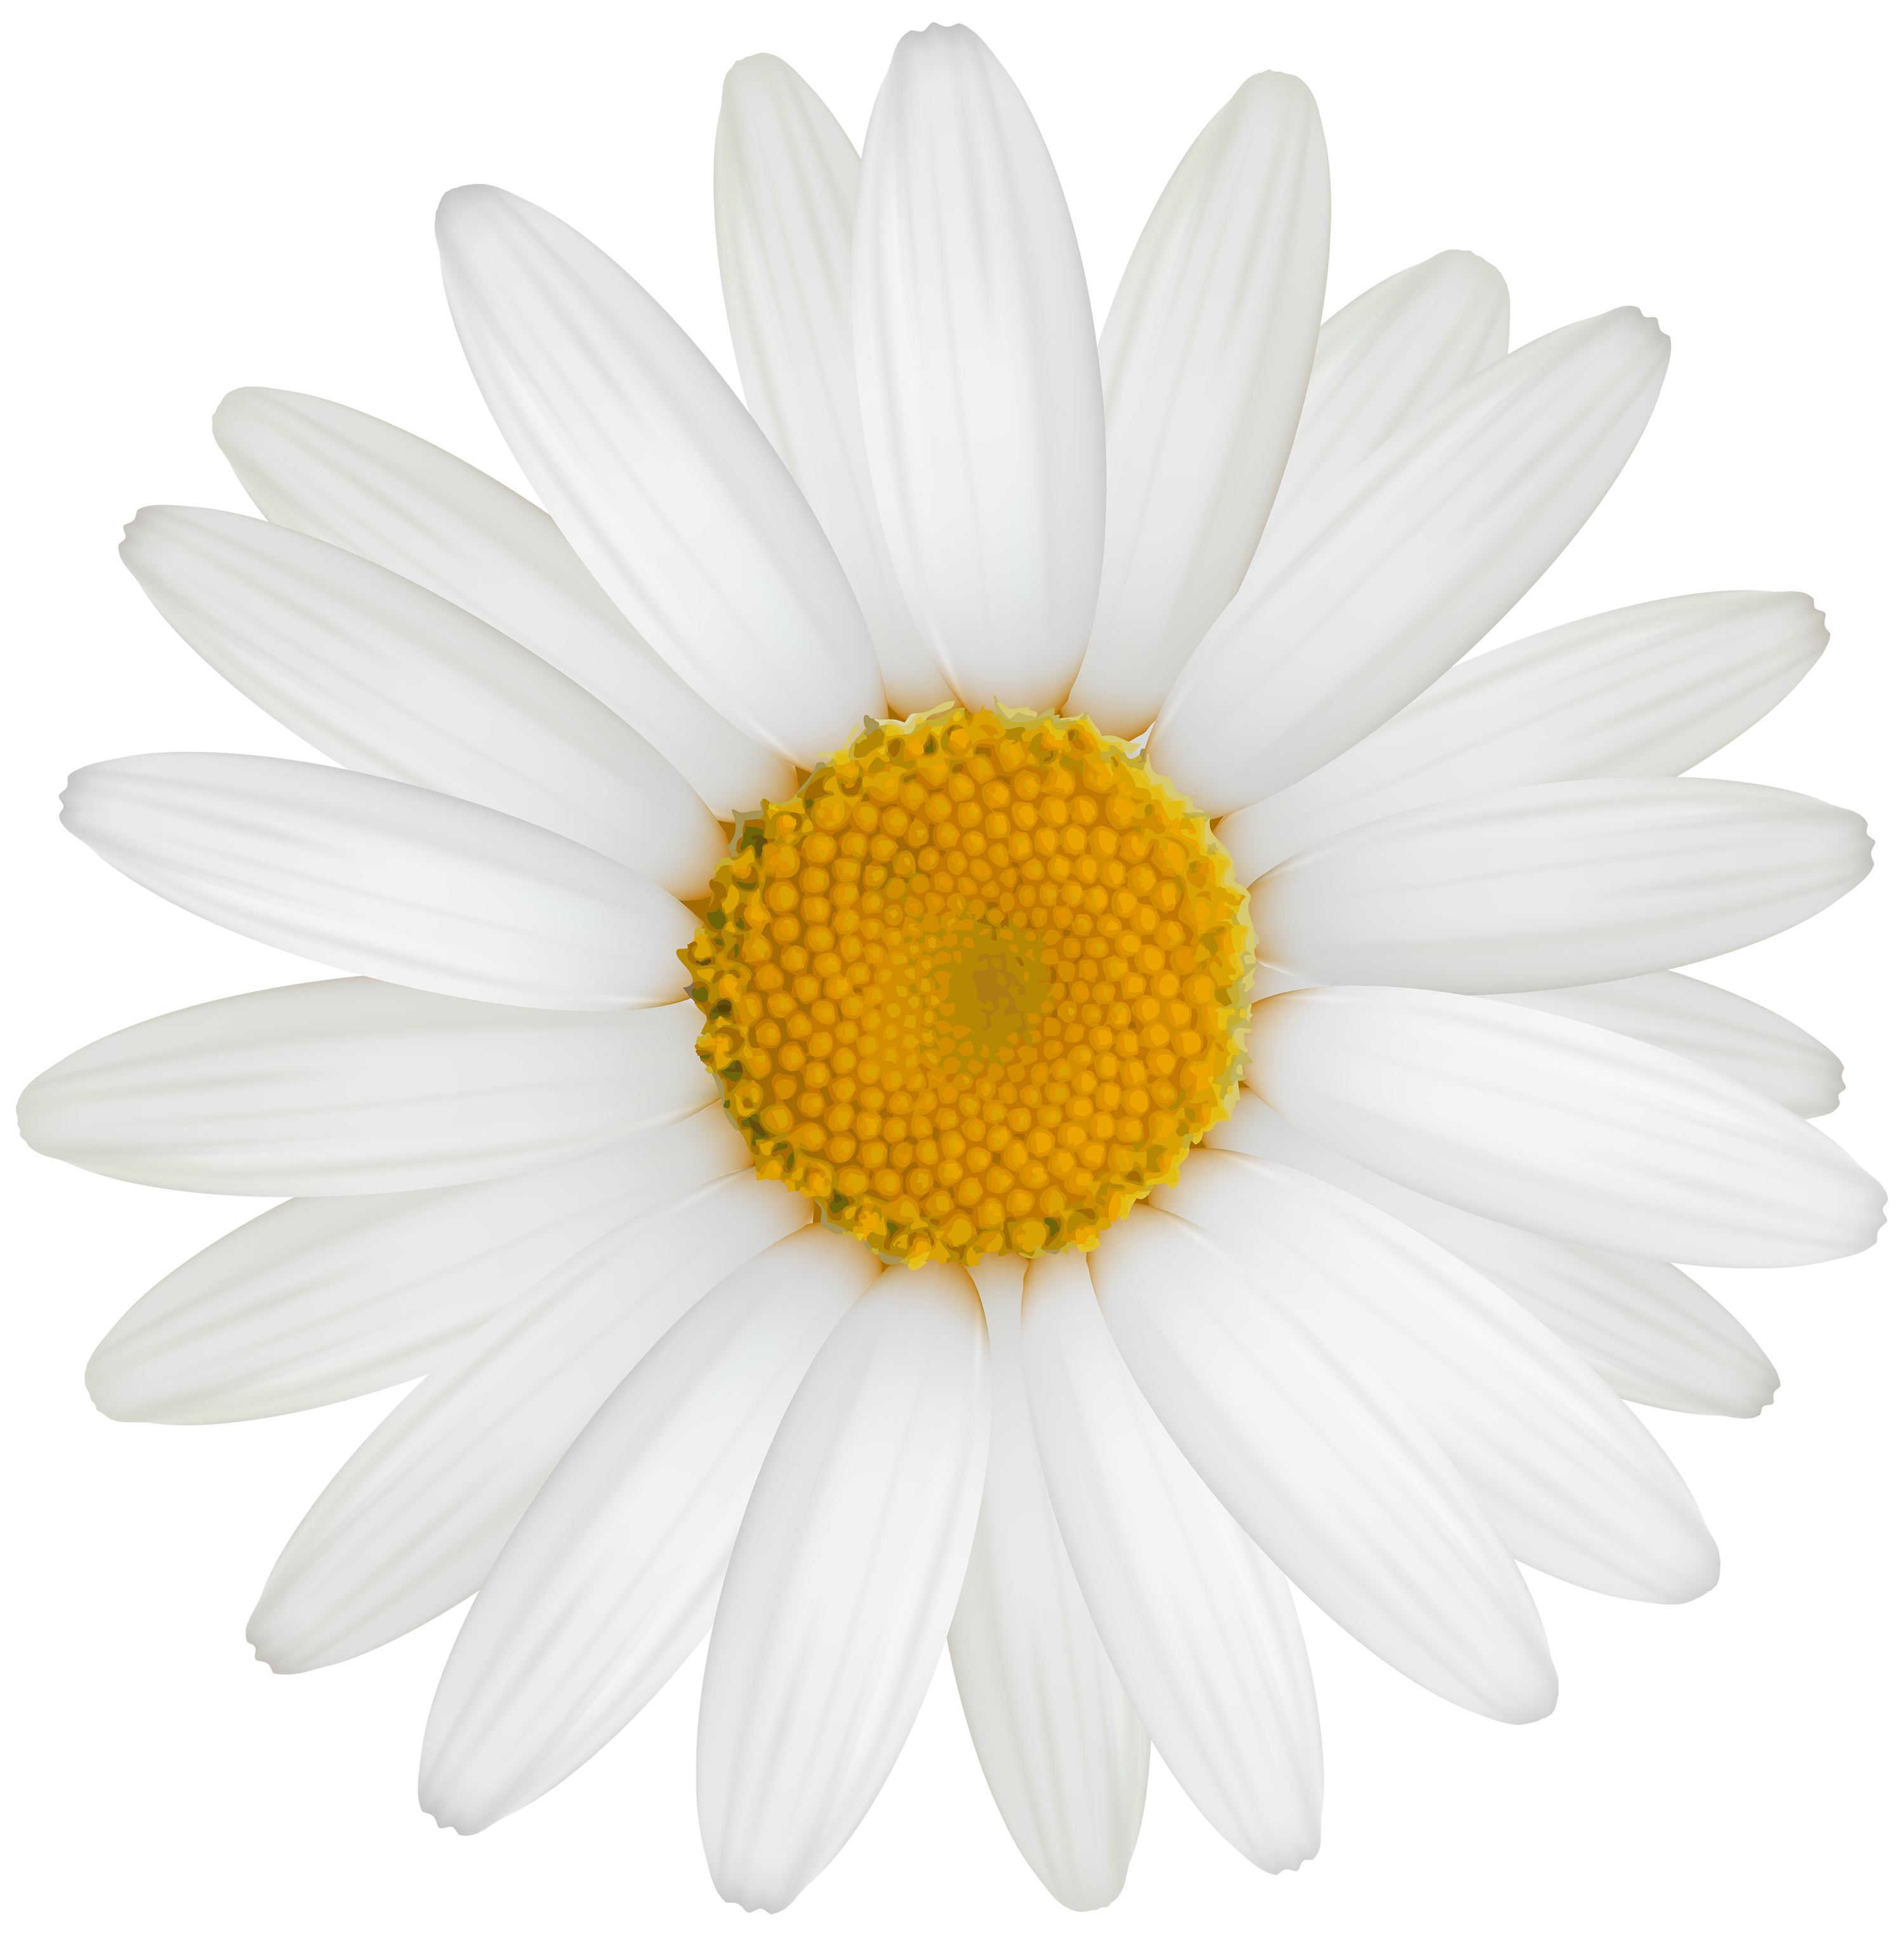 Daisy clipart. White png best web